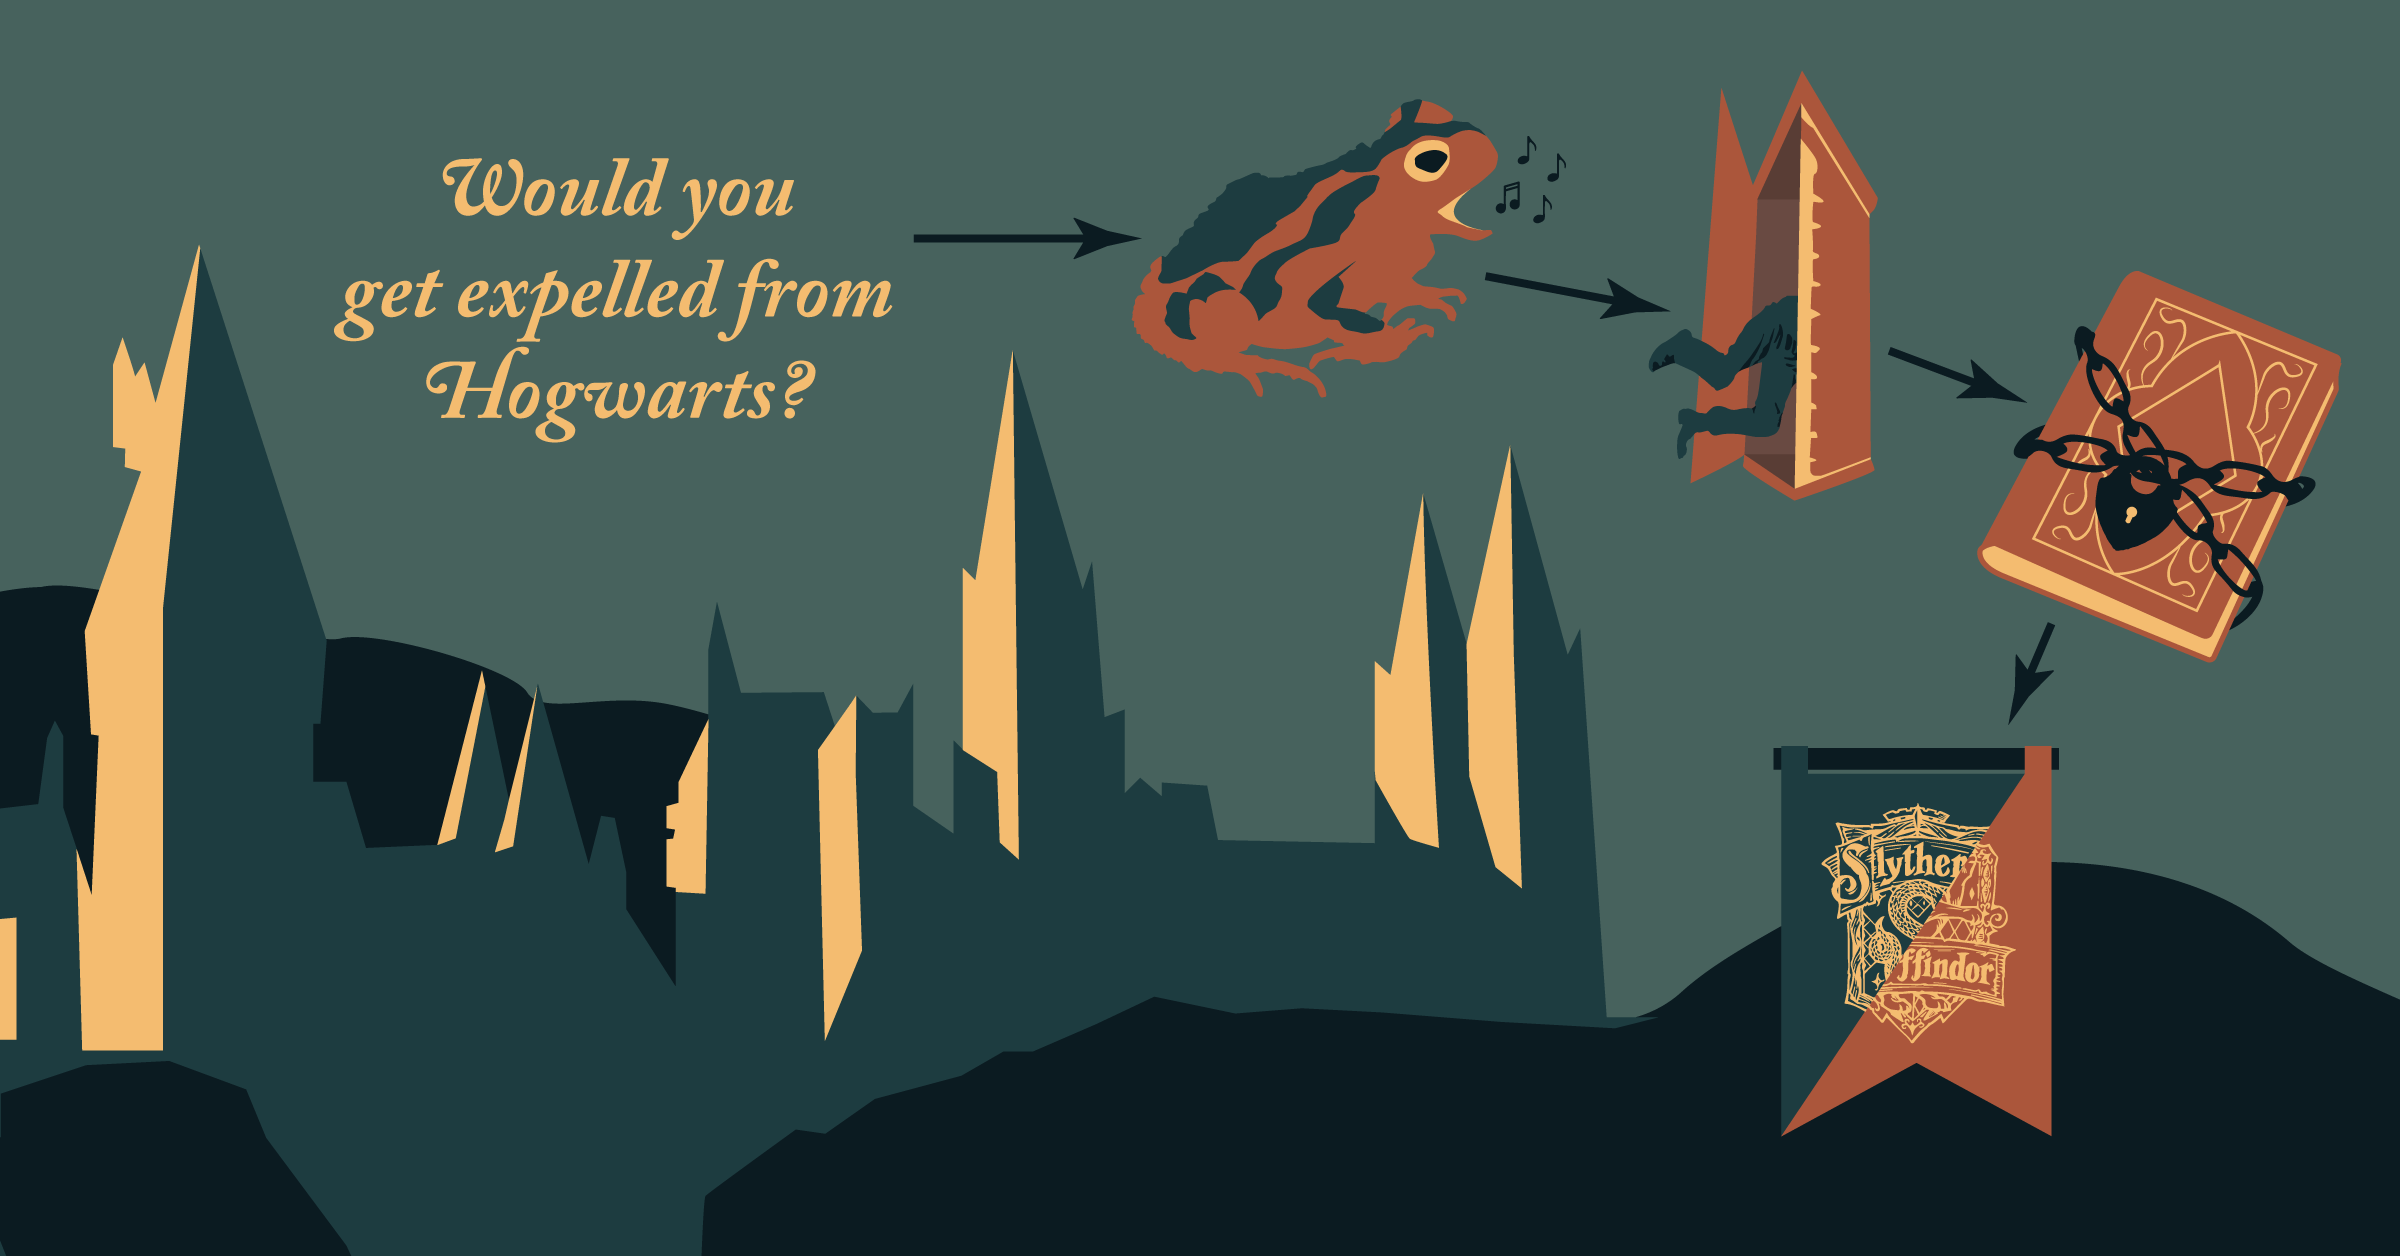 Would You Get Expelled From Hogwarts? [Flowchart]